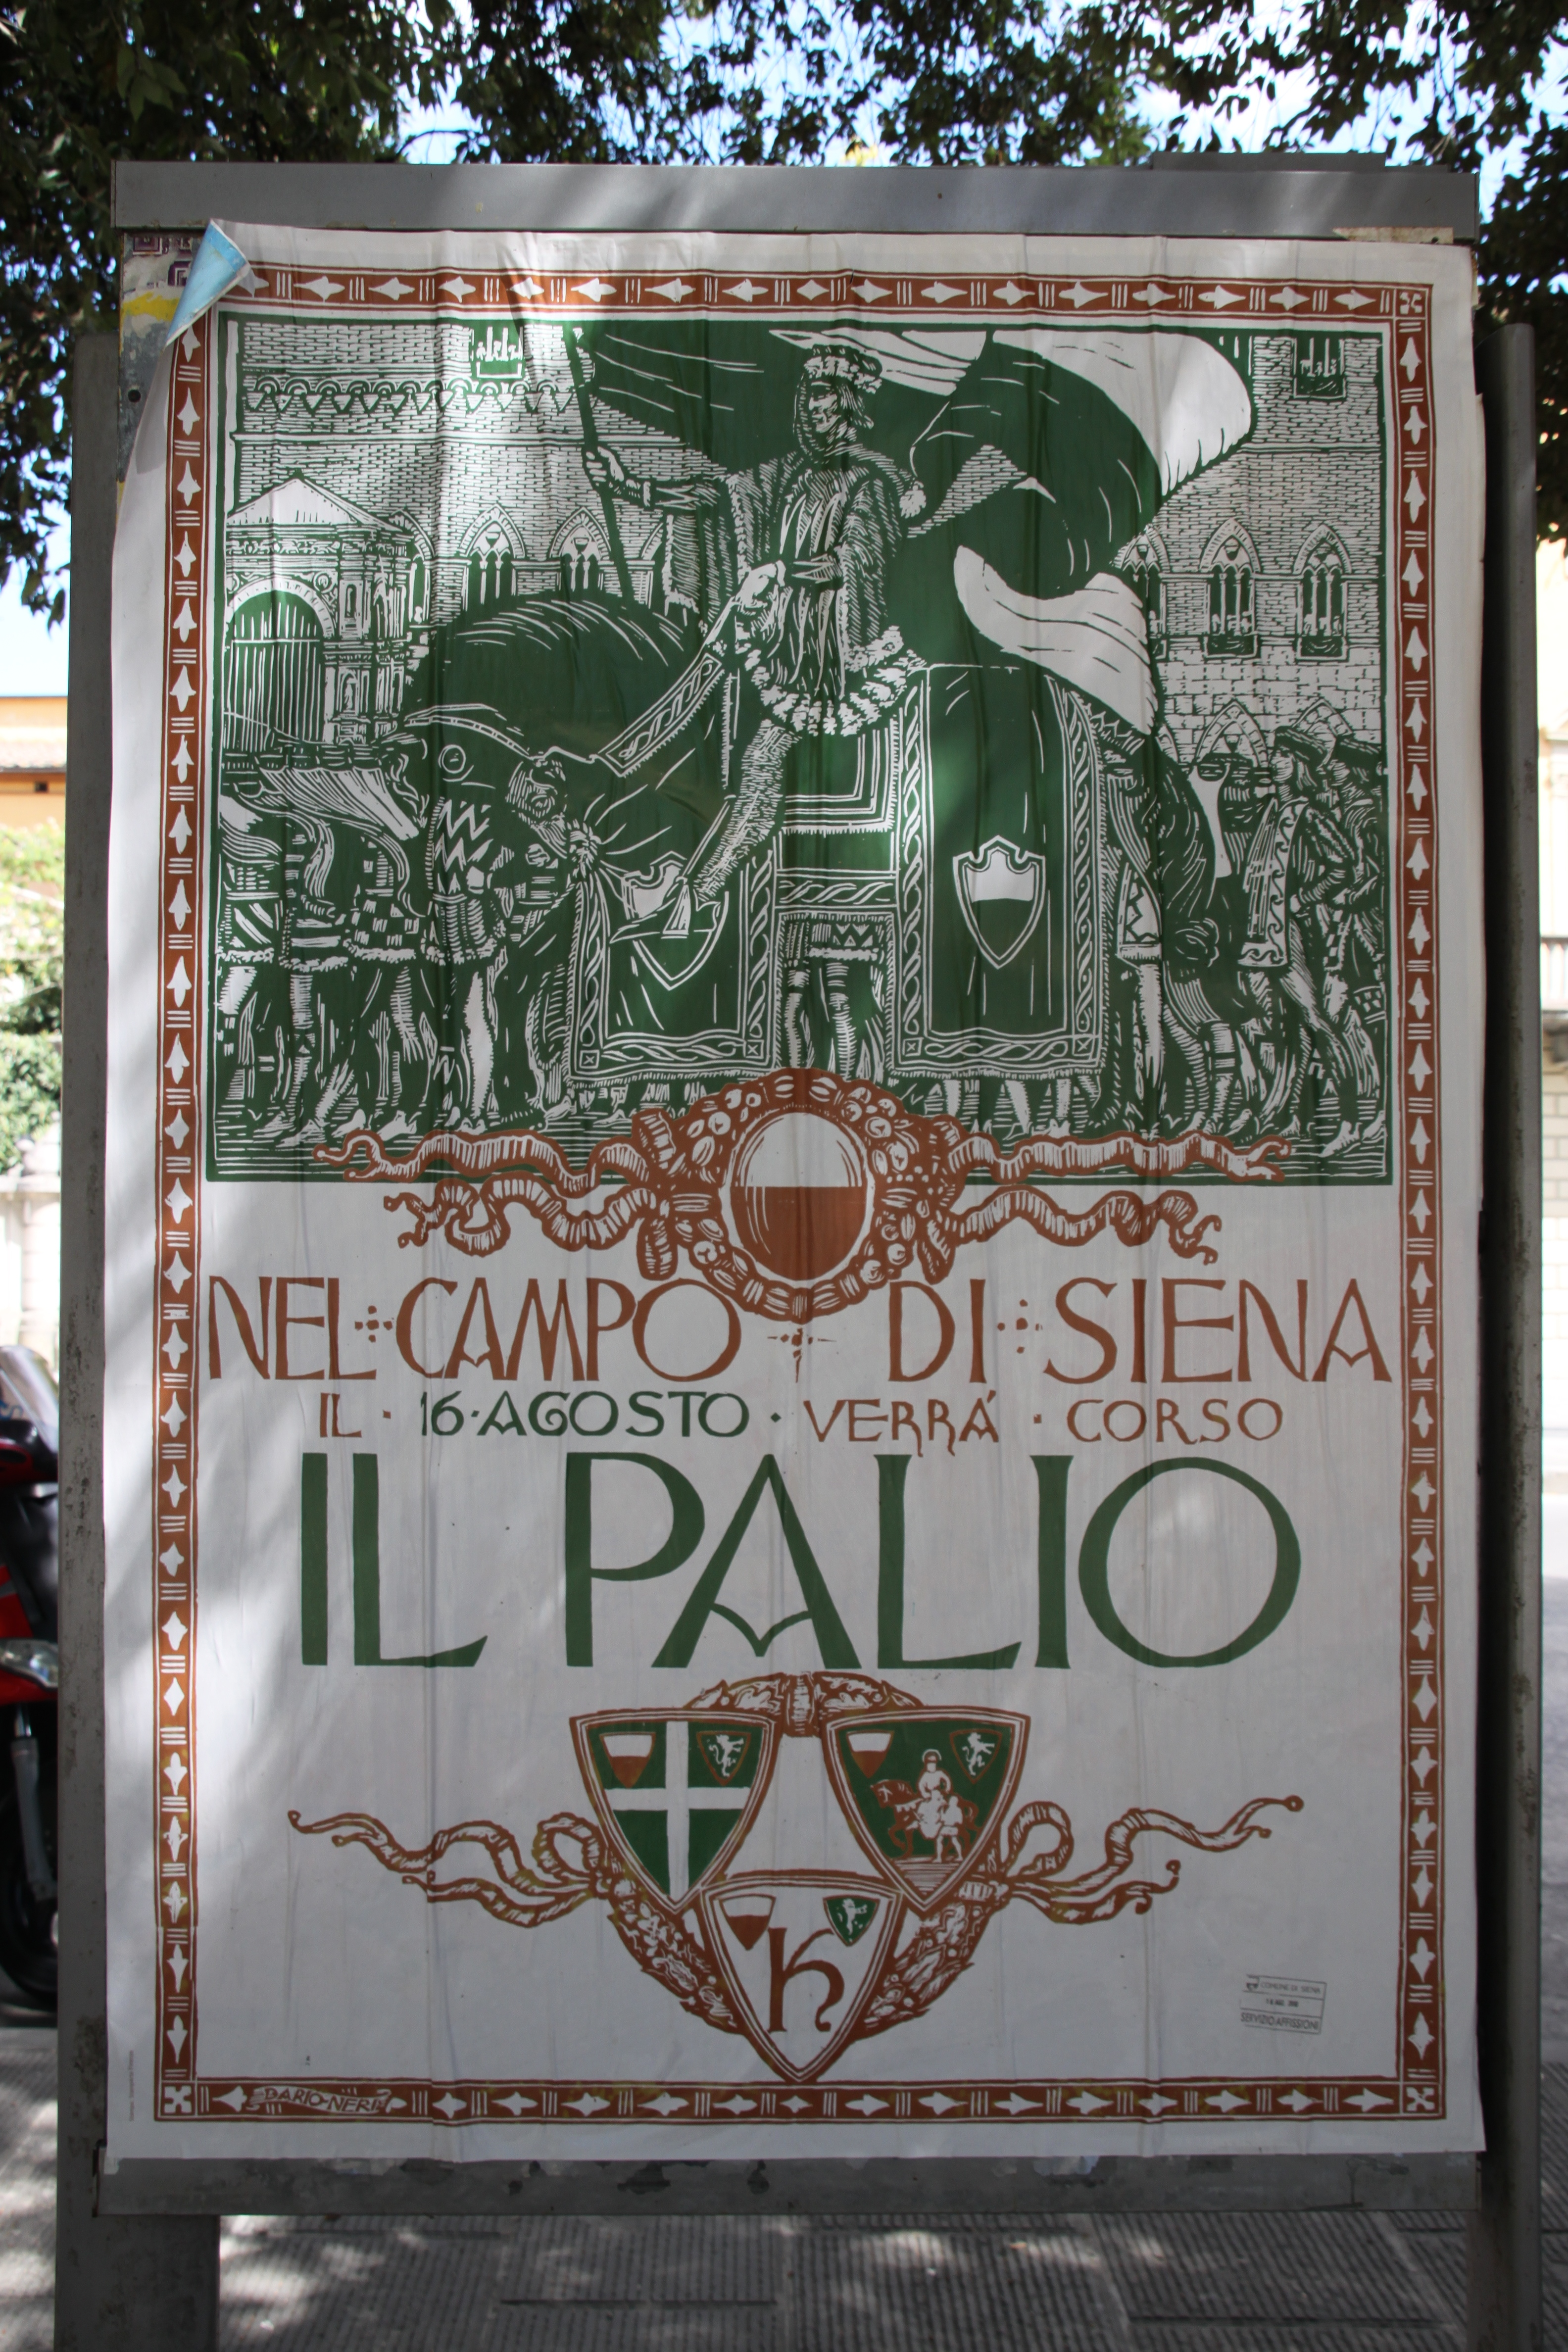 The official green and red poster for the Palio di Siena in 2010 showing a man in medieval costume riding through the streets on a horse and carrying the large black and white flag of Siena